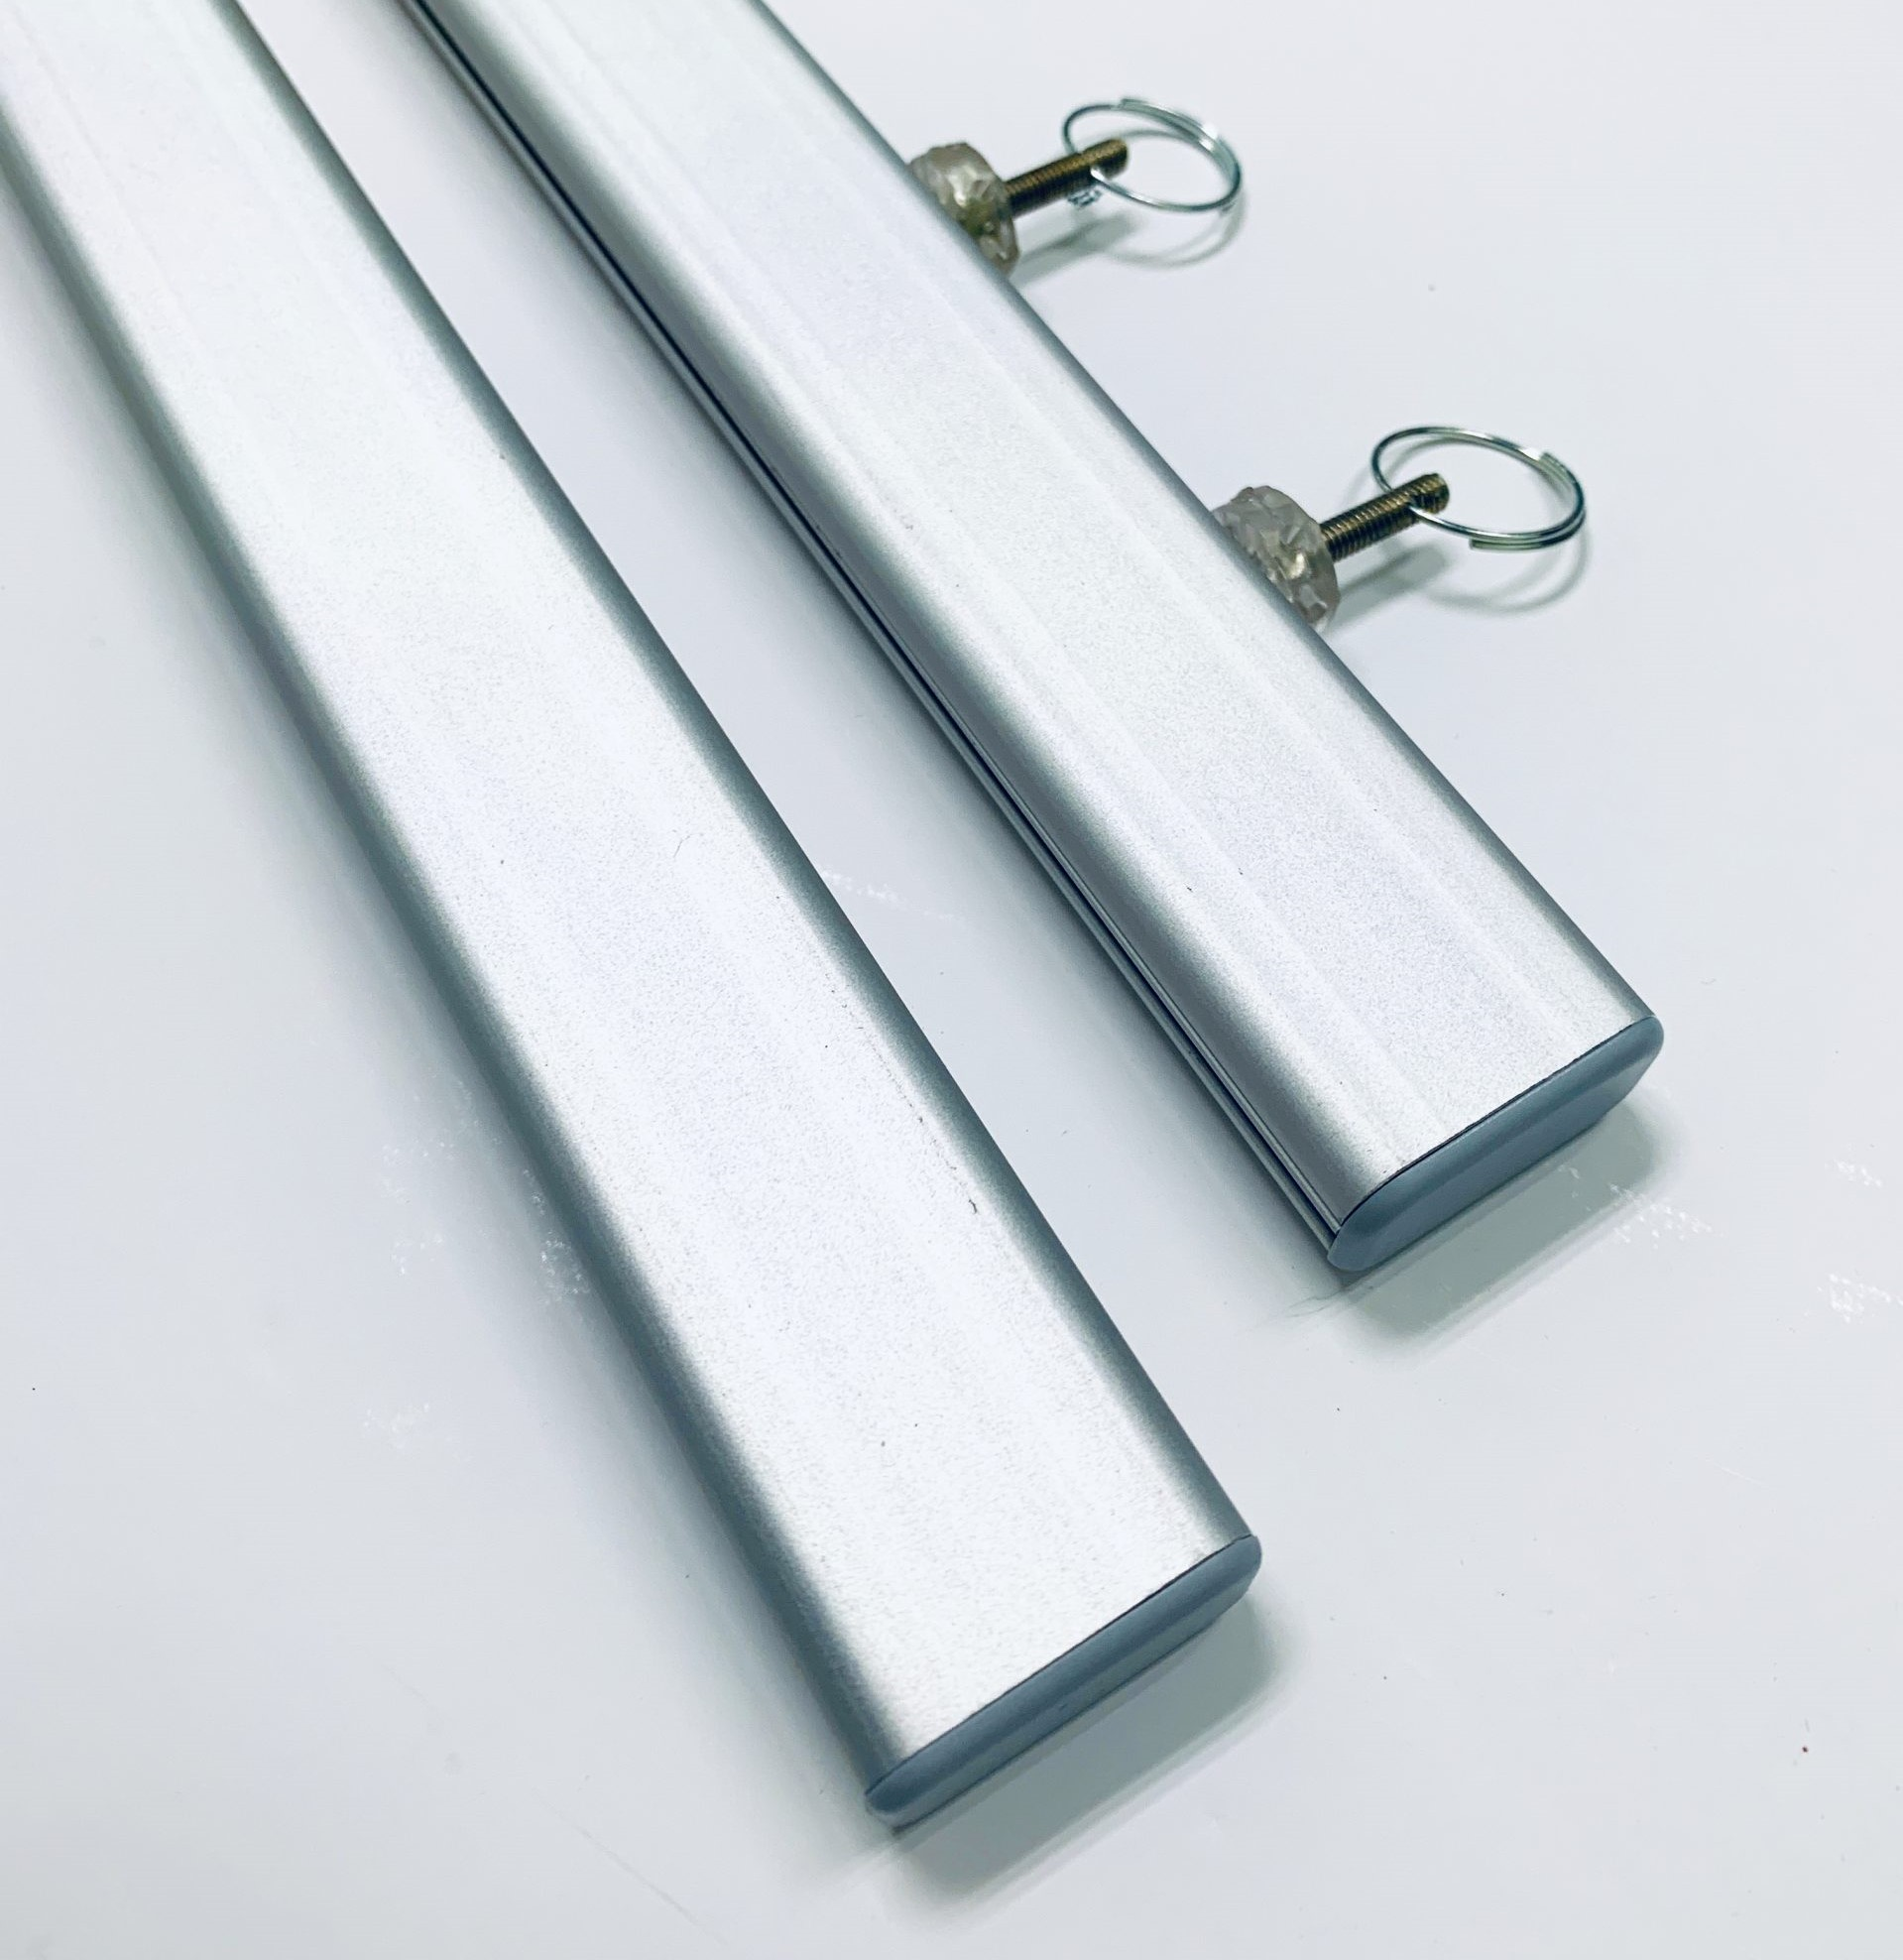 2pcs of Boni Profile with Two Ring Hooks (Silver) - 850mm